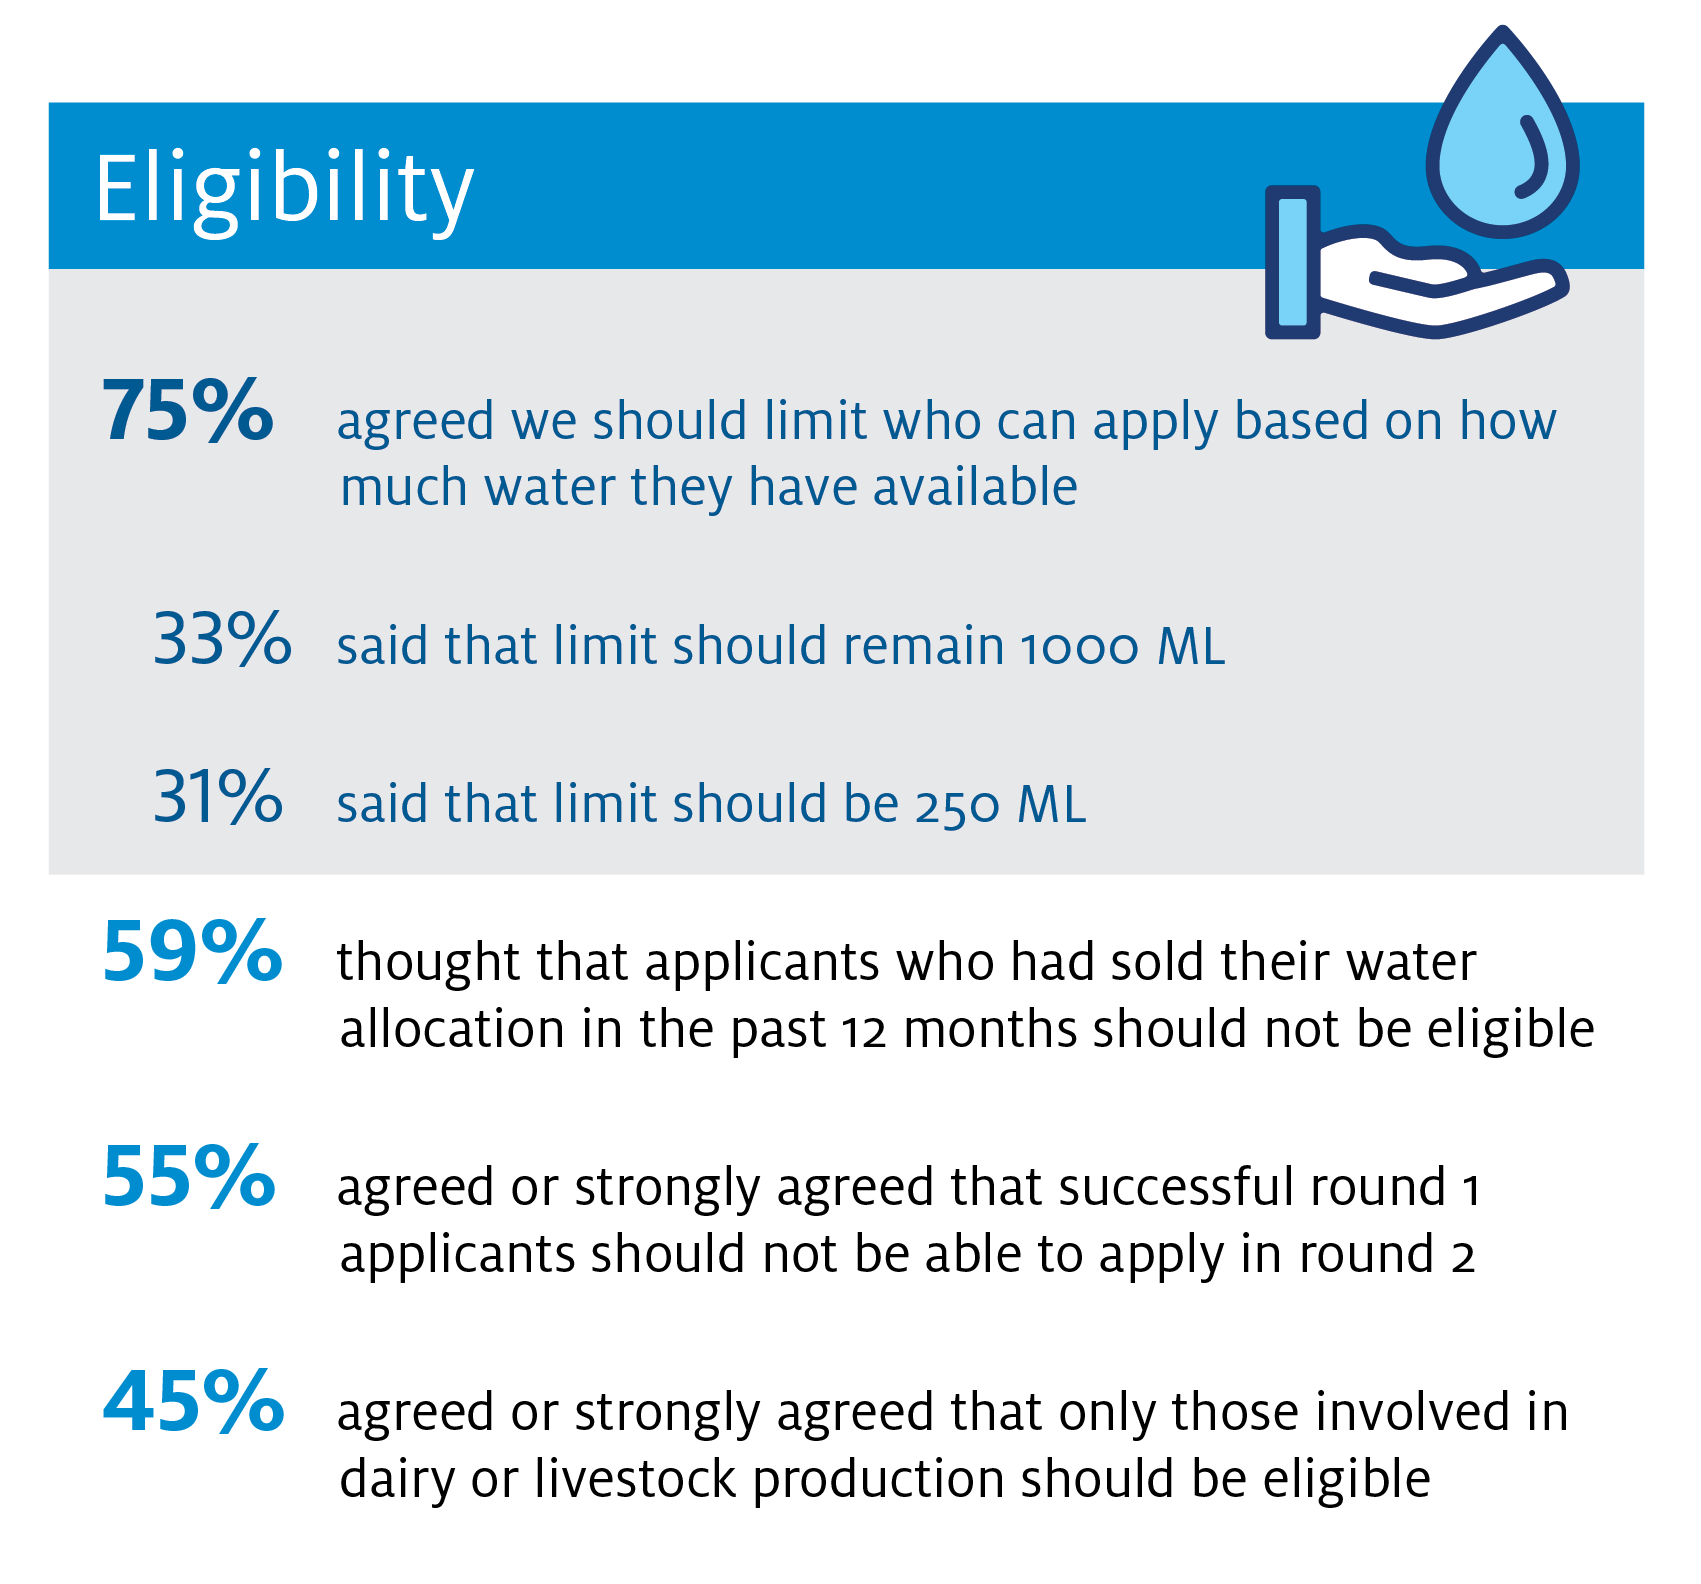 Eligibility. 75 per cent agreed we should limit who can apply based on how much water they have available. Of these, 31 per cent said that limit should be 250 ML and 33 per cent said that limit should remain 1000 ML. 59 per cent thought that applicants who had sold their water allocation in the past 12 months should not be eligible. 55 per cent agreed or strongly agreed that successful round 1 applicants should not be able to apply in round 2. 45 per cent agreed or strongly agreed that only those involved in dairy or livestock production should be eligible.